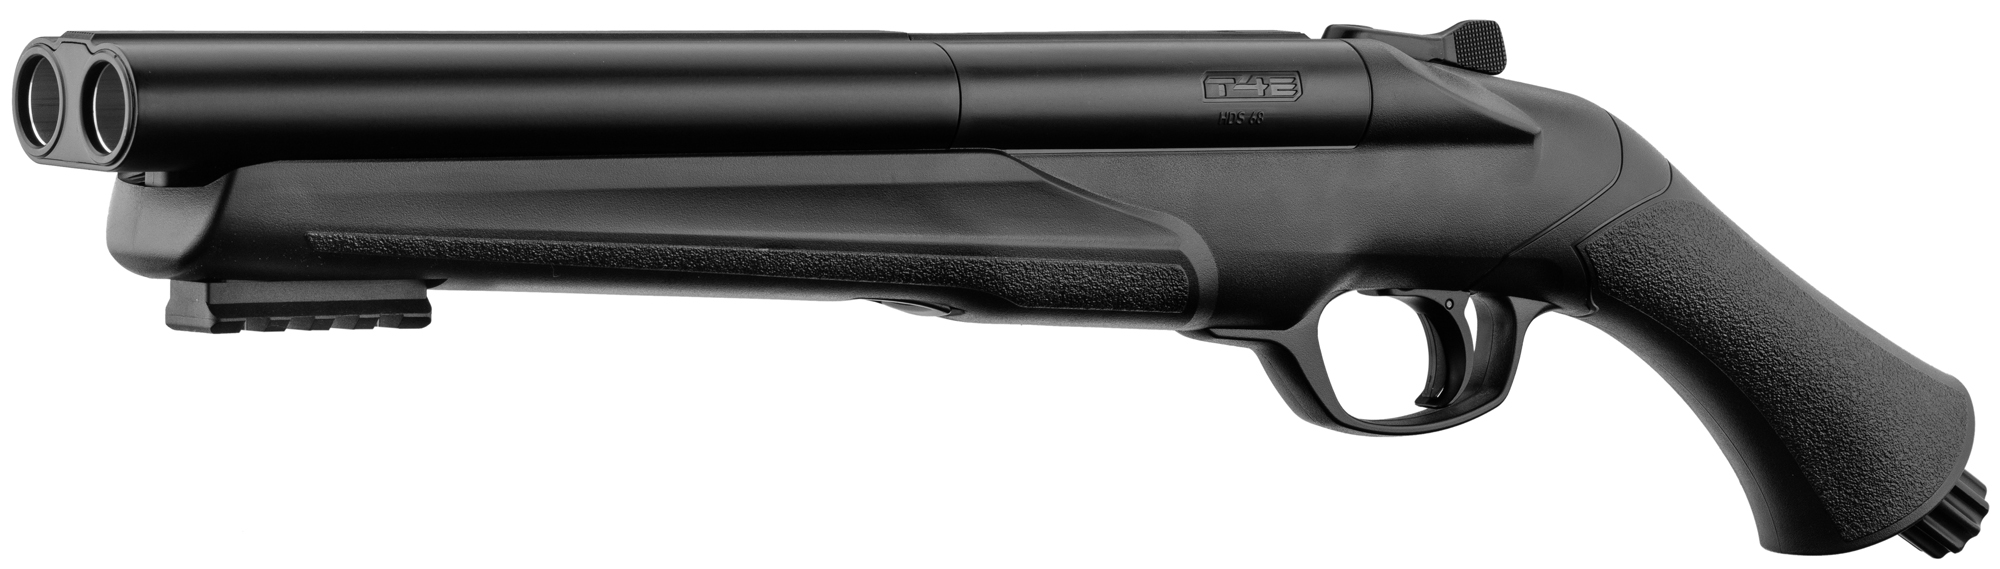 AD865-1 Walther T4E HDS CO2 rifle cal. 68 - PCKAD866